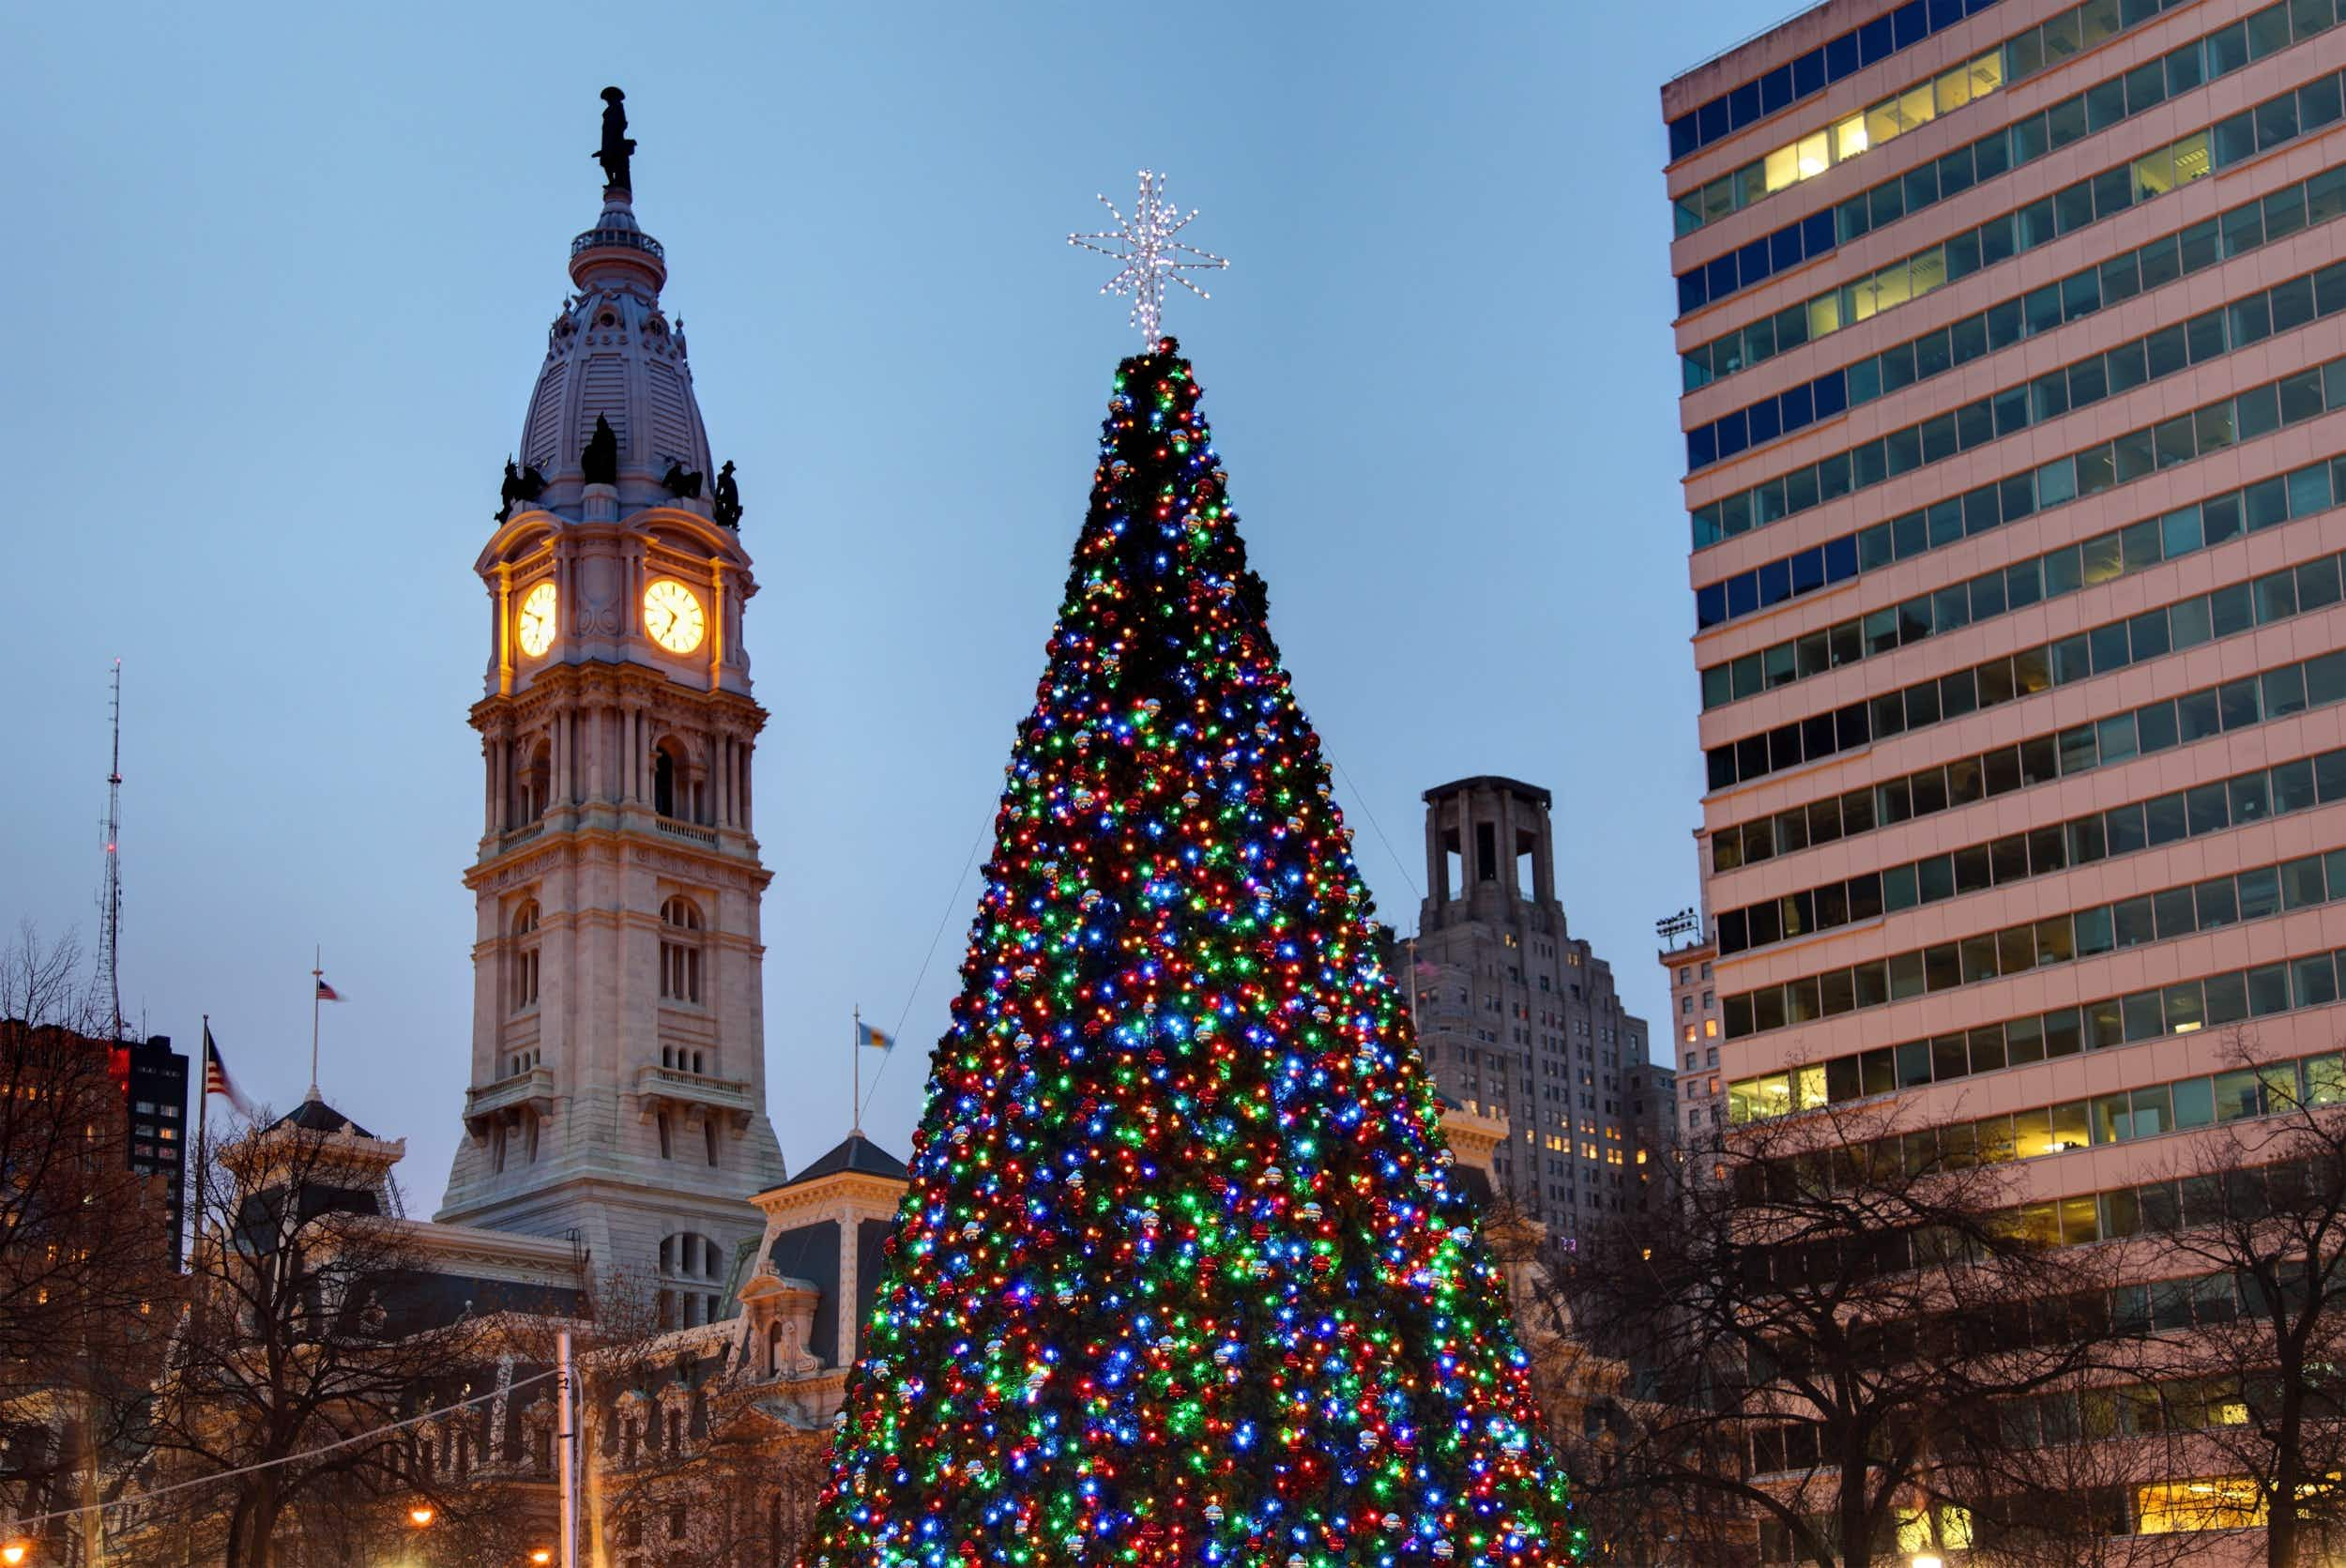 With many merry events, Philadelphia is the perfect place for a holiday visit © DenisTangneyJr / Getty Images